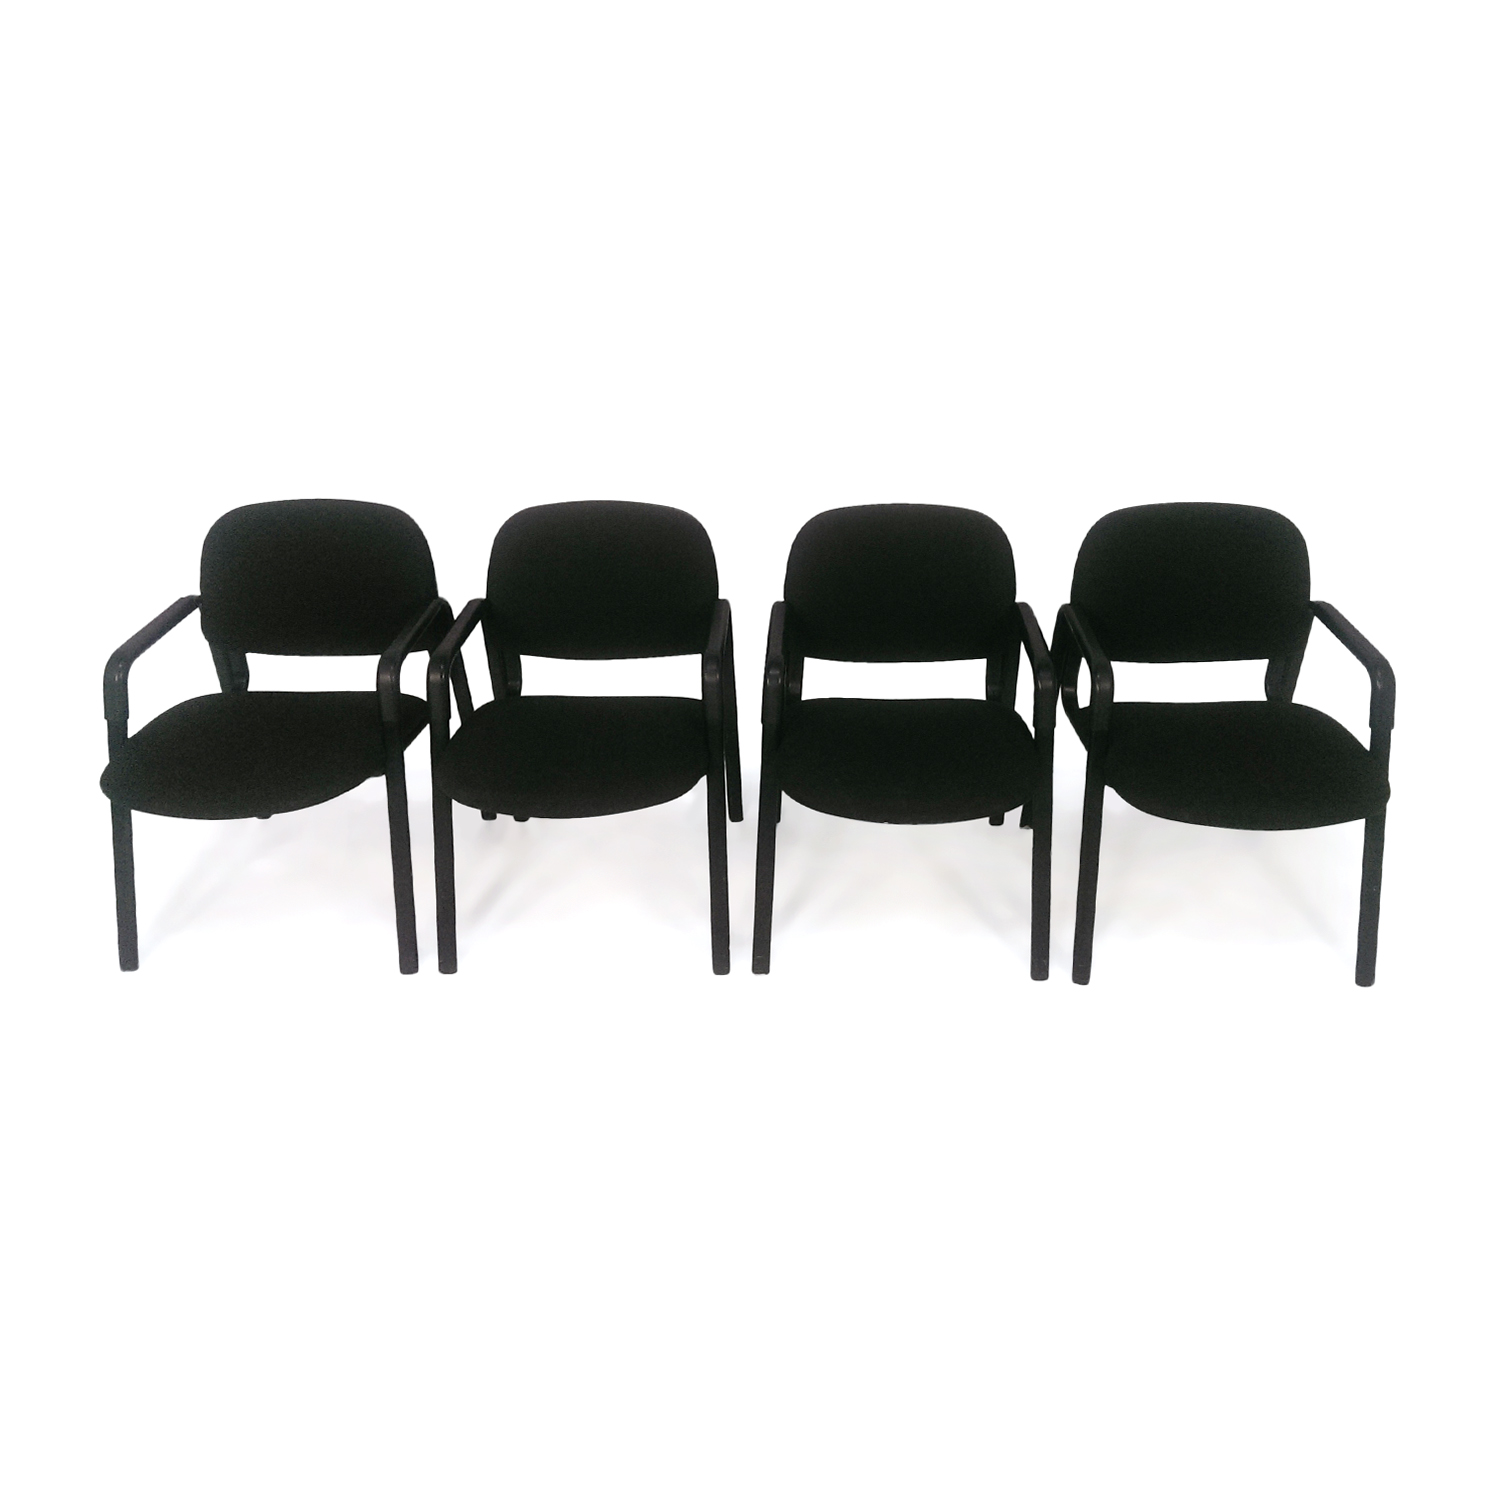 Set of 4 Chairs nyc